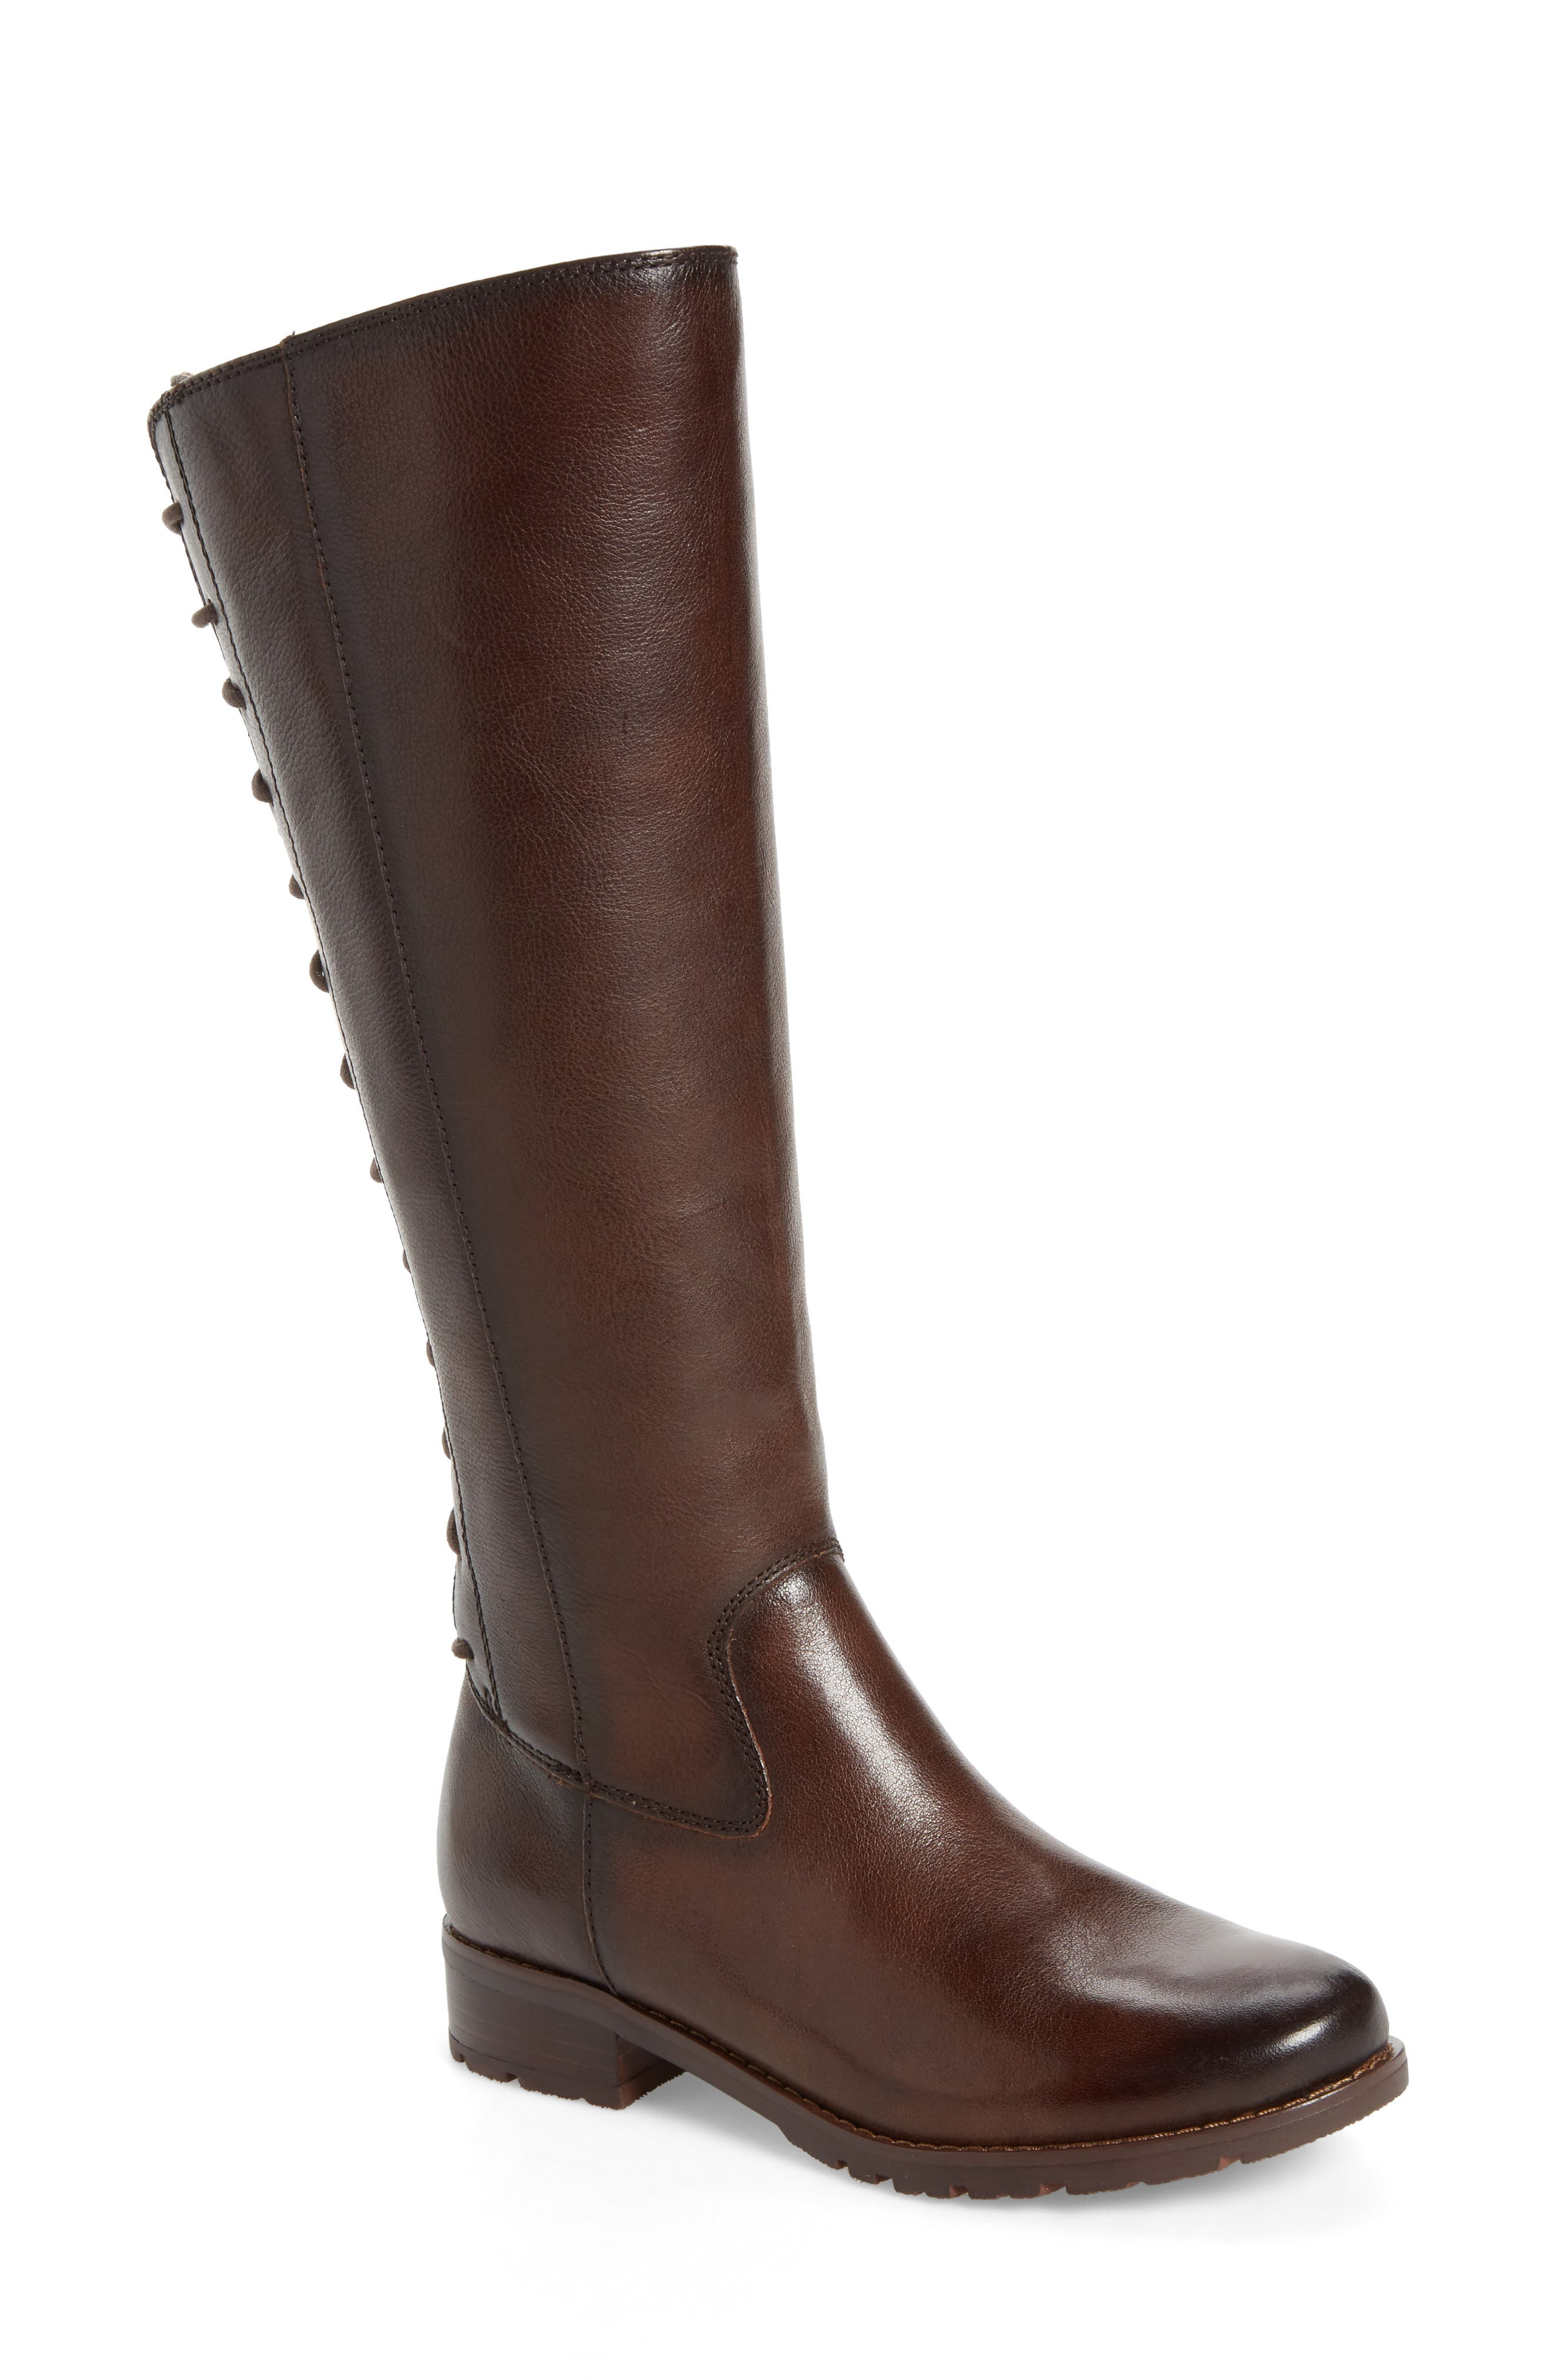 'Sharnell' Riding Boot,                         Main,                         color, Aztec Brown Leather